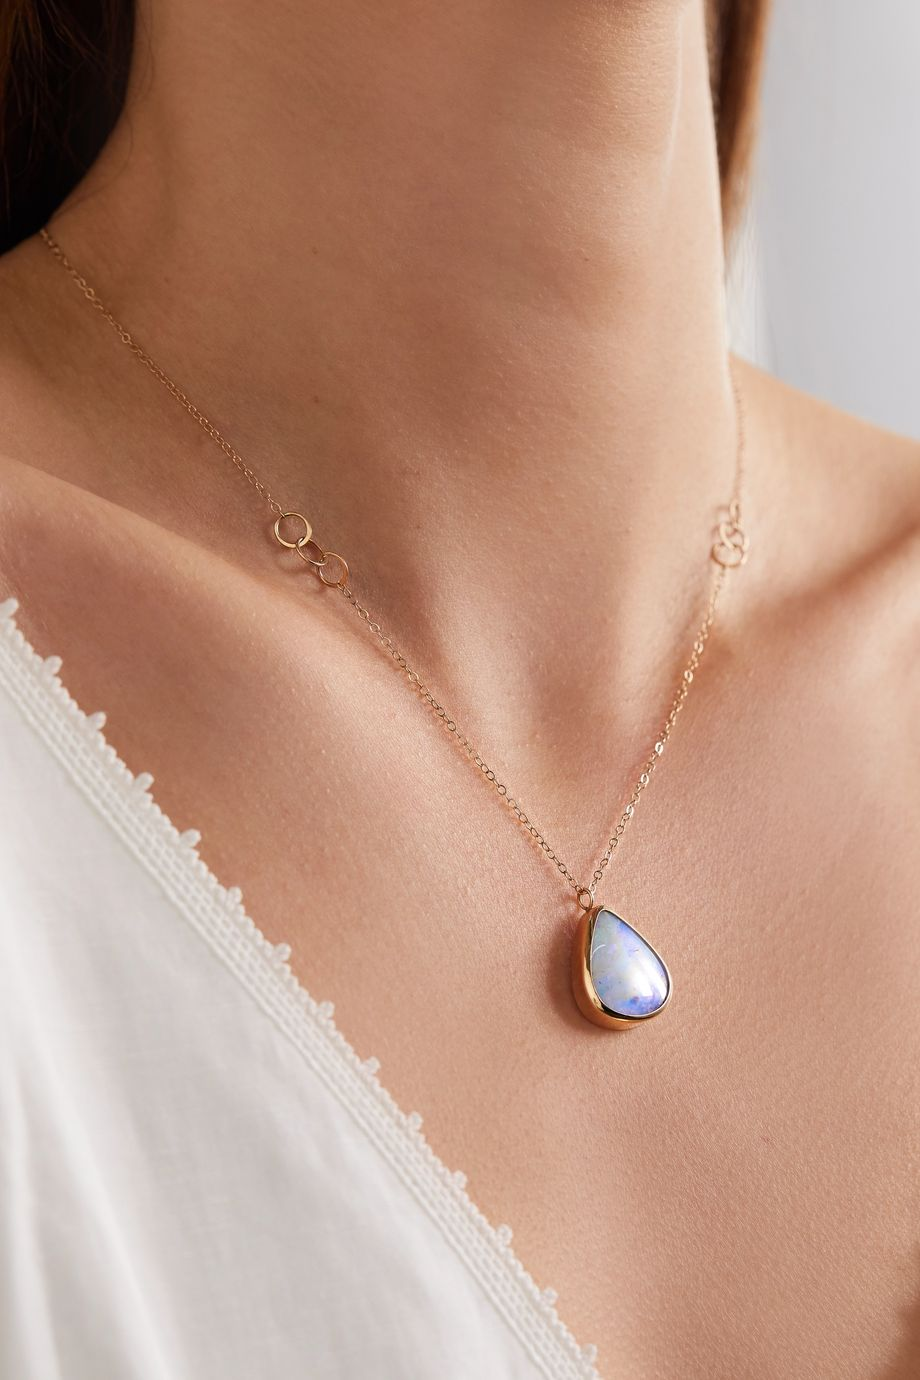 Melissa Joy Manning 14-karat gold opal necklace